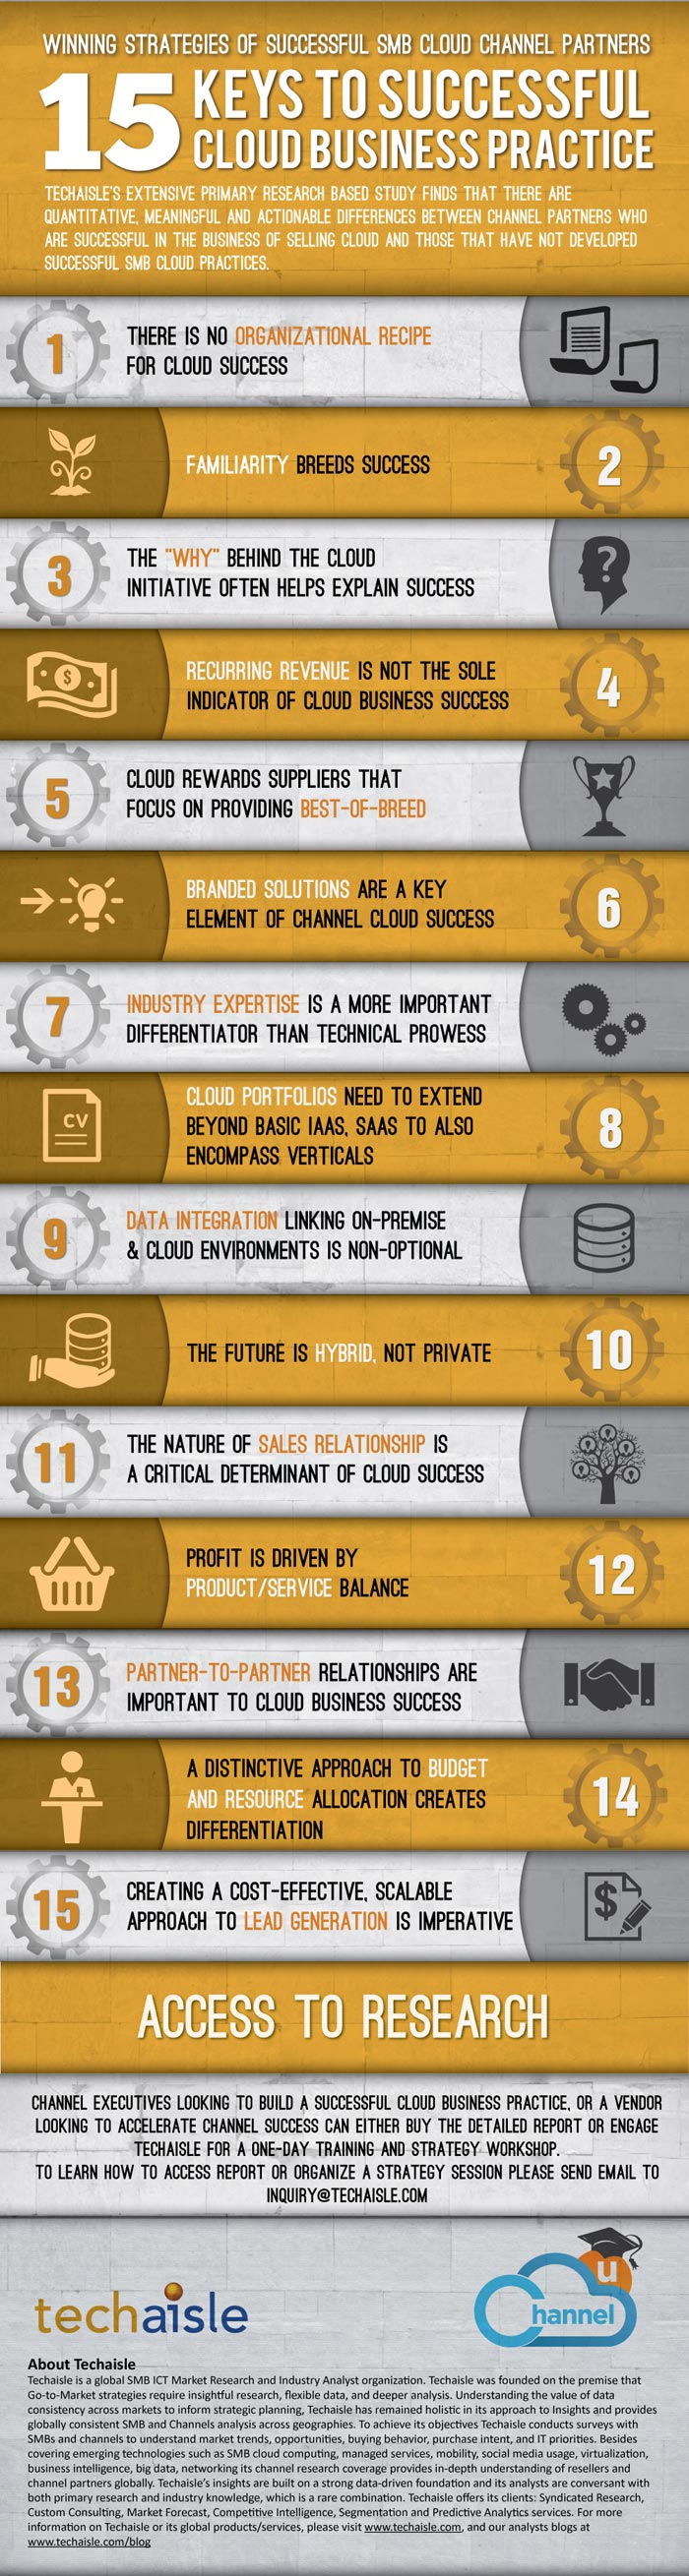 15 Keys to Successful Cloud Business Practice #infographic